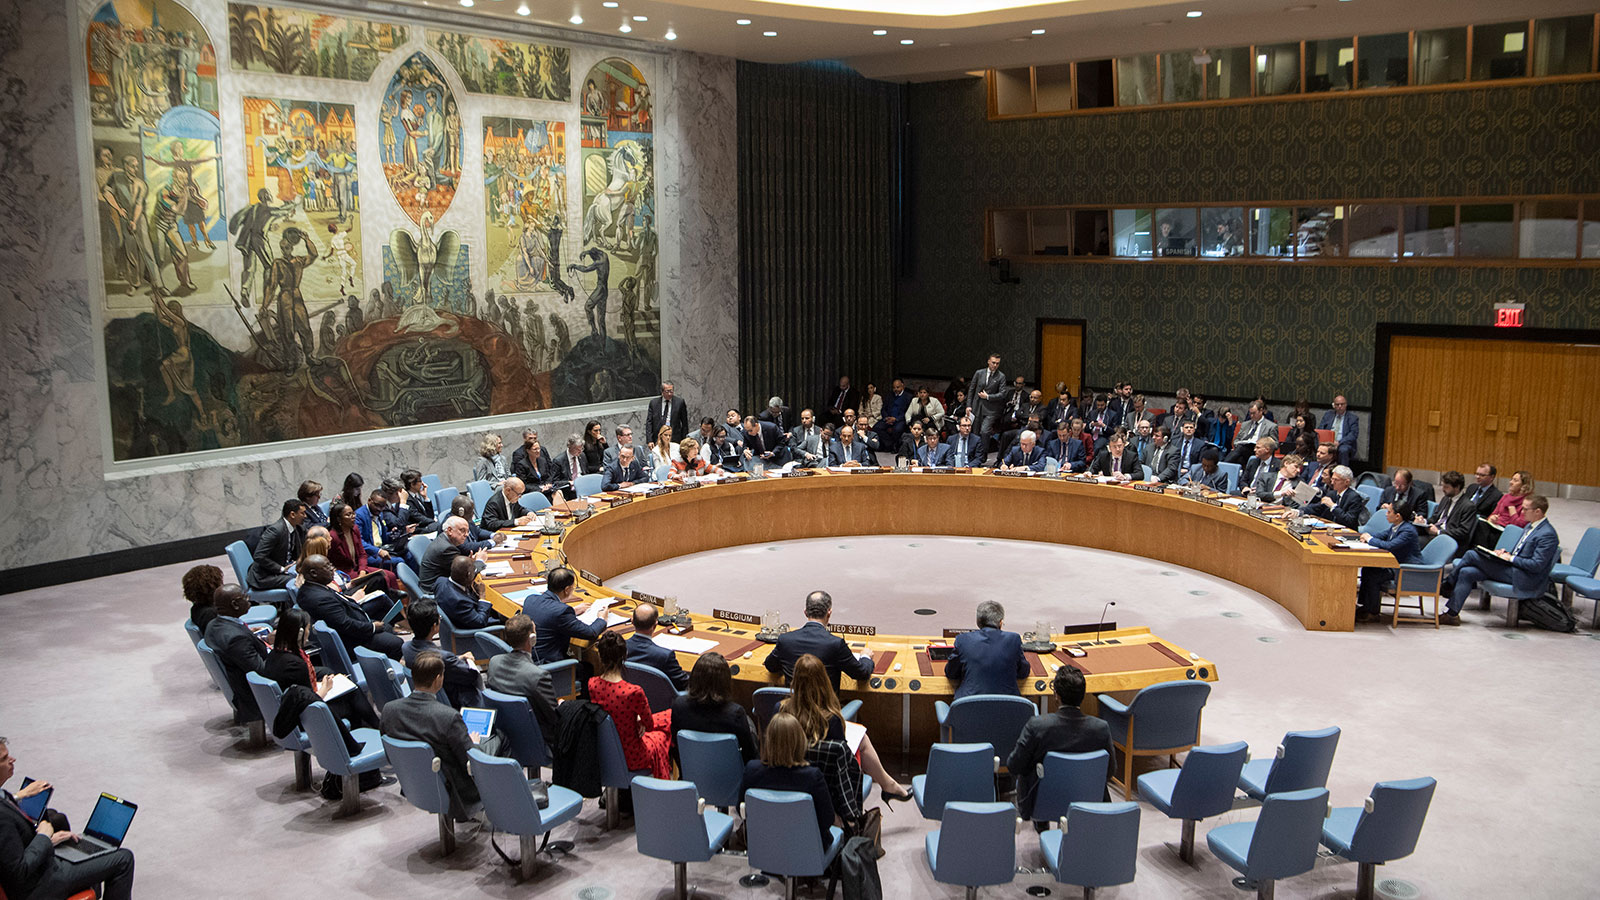 Representatives of UN member states sitting at the horseshoe shaped table of the UN Security Council. On the wall to the left there is a large tapestry displaying ancient sceneries. The glass panes of interpreting booths can be seen at the wall in the background